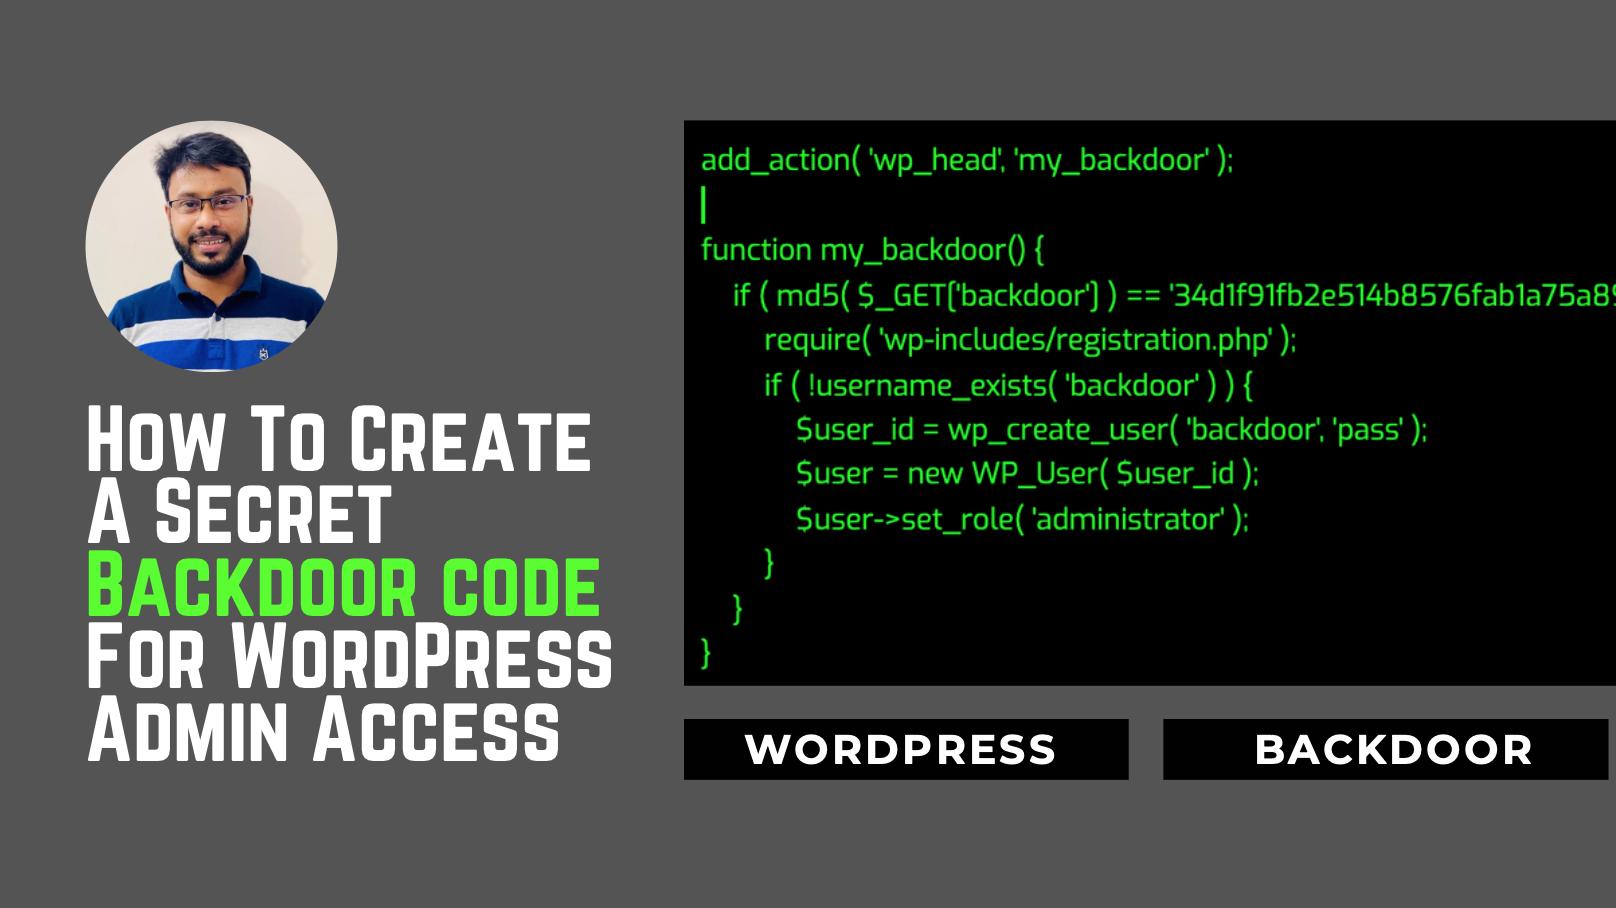 How To Create A Secret Backdoor Code For WordPress Admin Access To Push New User(for bad clients)